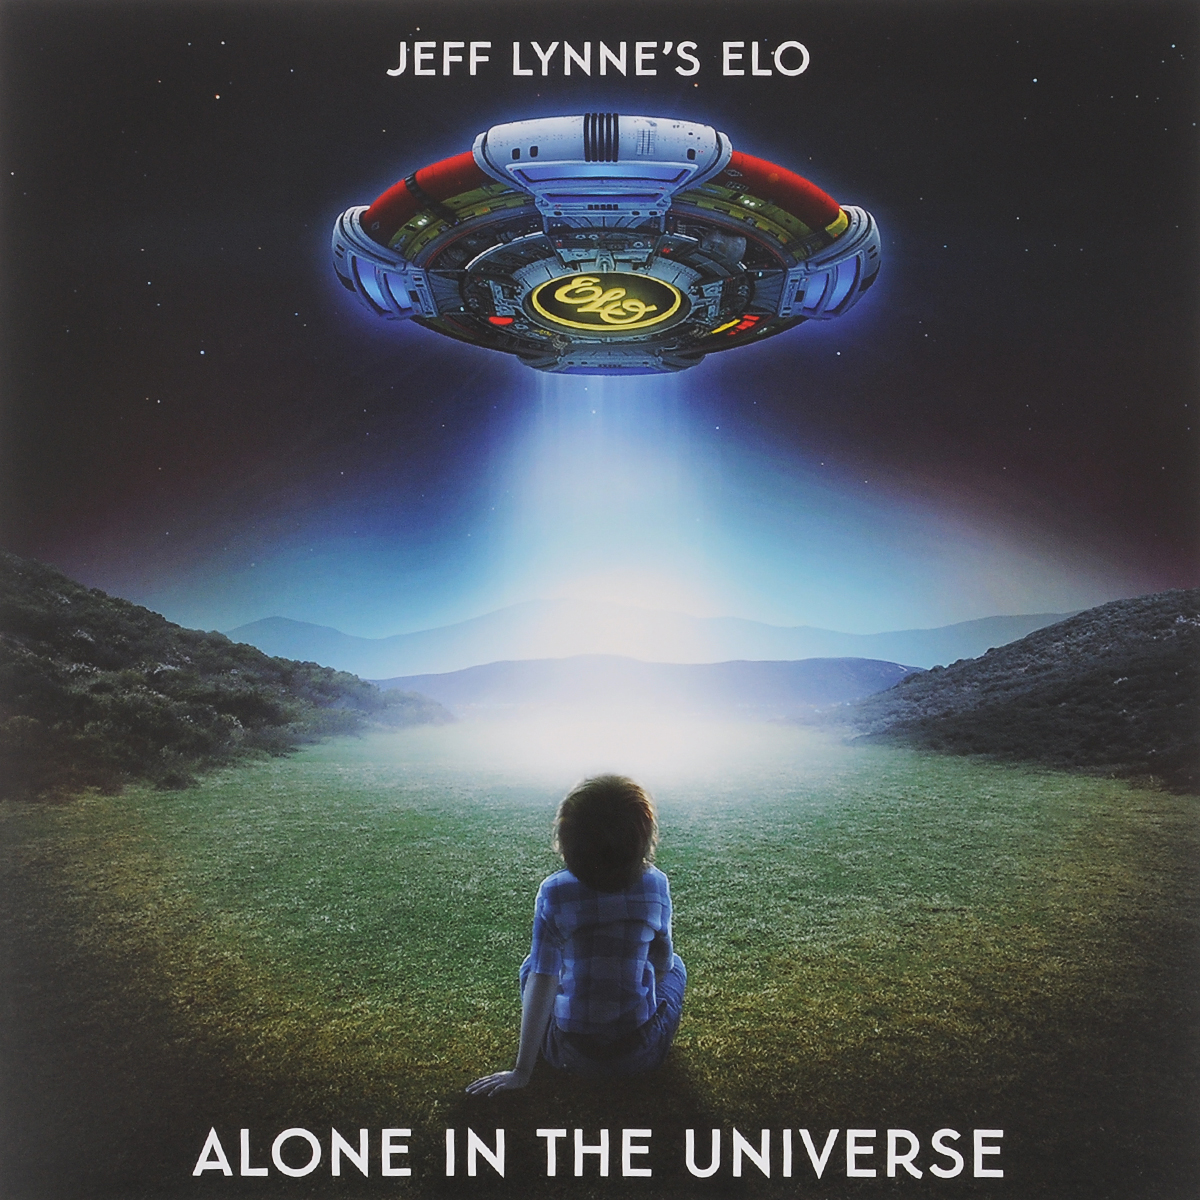 Electric Light Orchestra Jeff Lynne's Elo. Alone In The Universe (LP) виниловая пластинка elo jeff lynnes elo alone in the universe